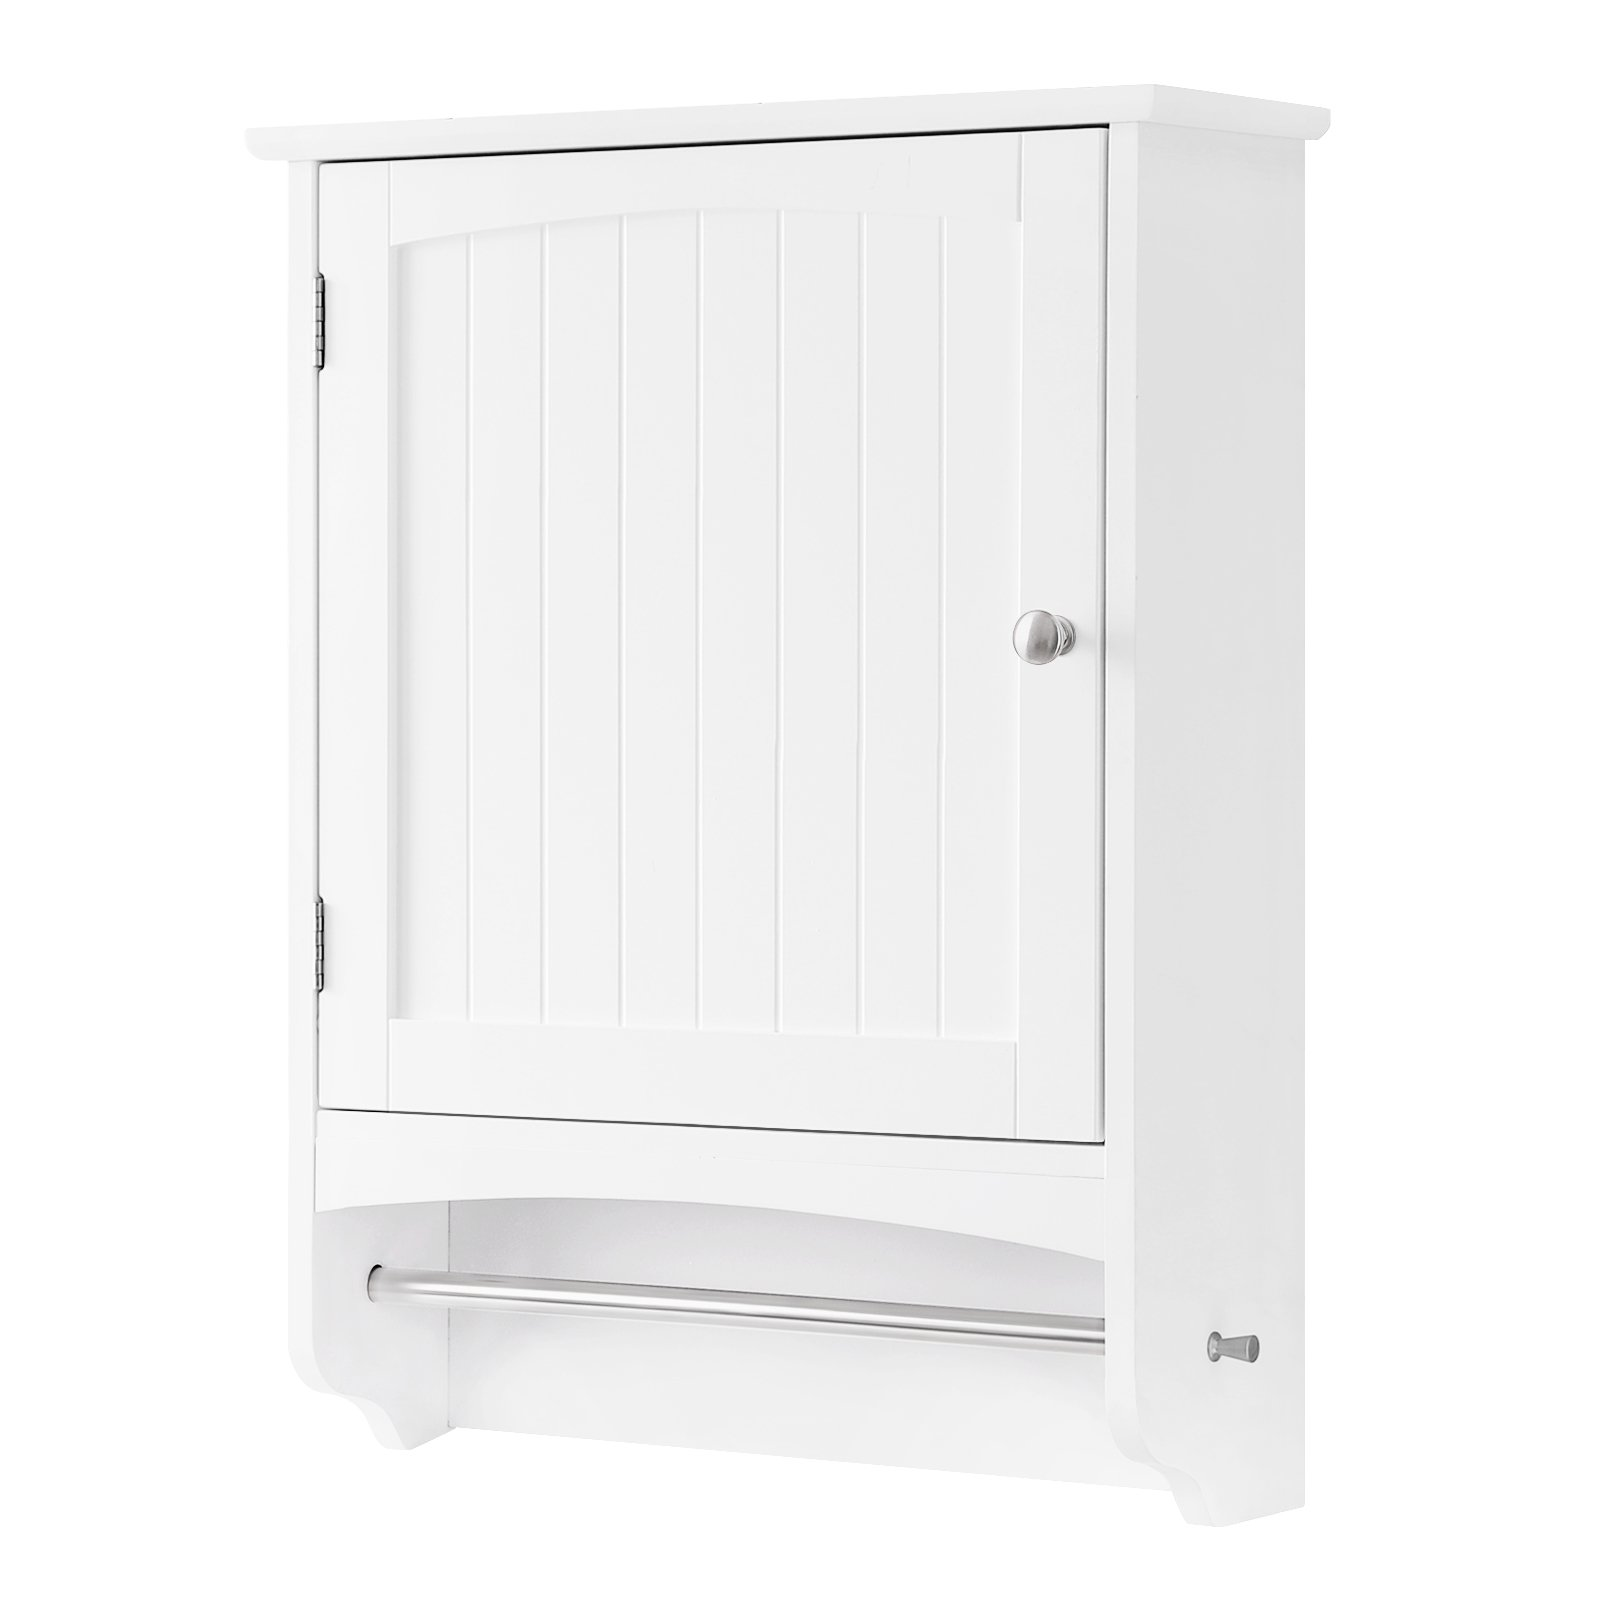 SONGMICS Wall Cabinet, Hanging Bathroom Storage Cabinet with Rod and Adjustable Shelf, Medicine Cabinet, Wooden, White 18.9''L x 6.3''W x 25.6''H, UBBC22WT